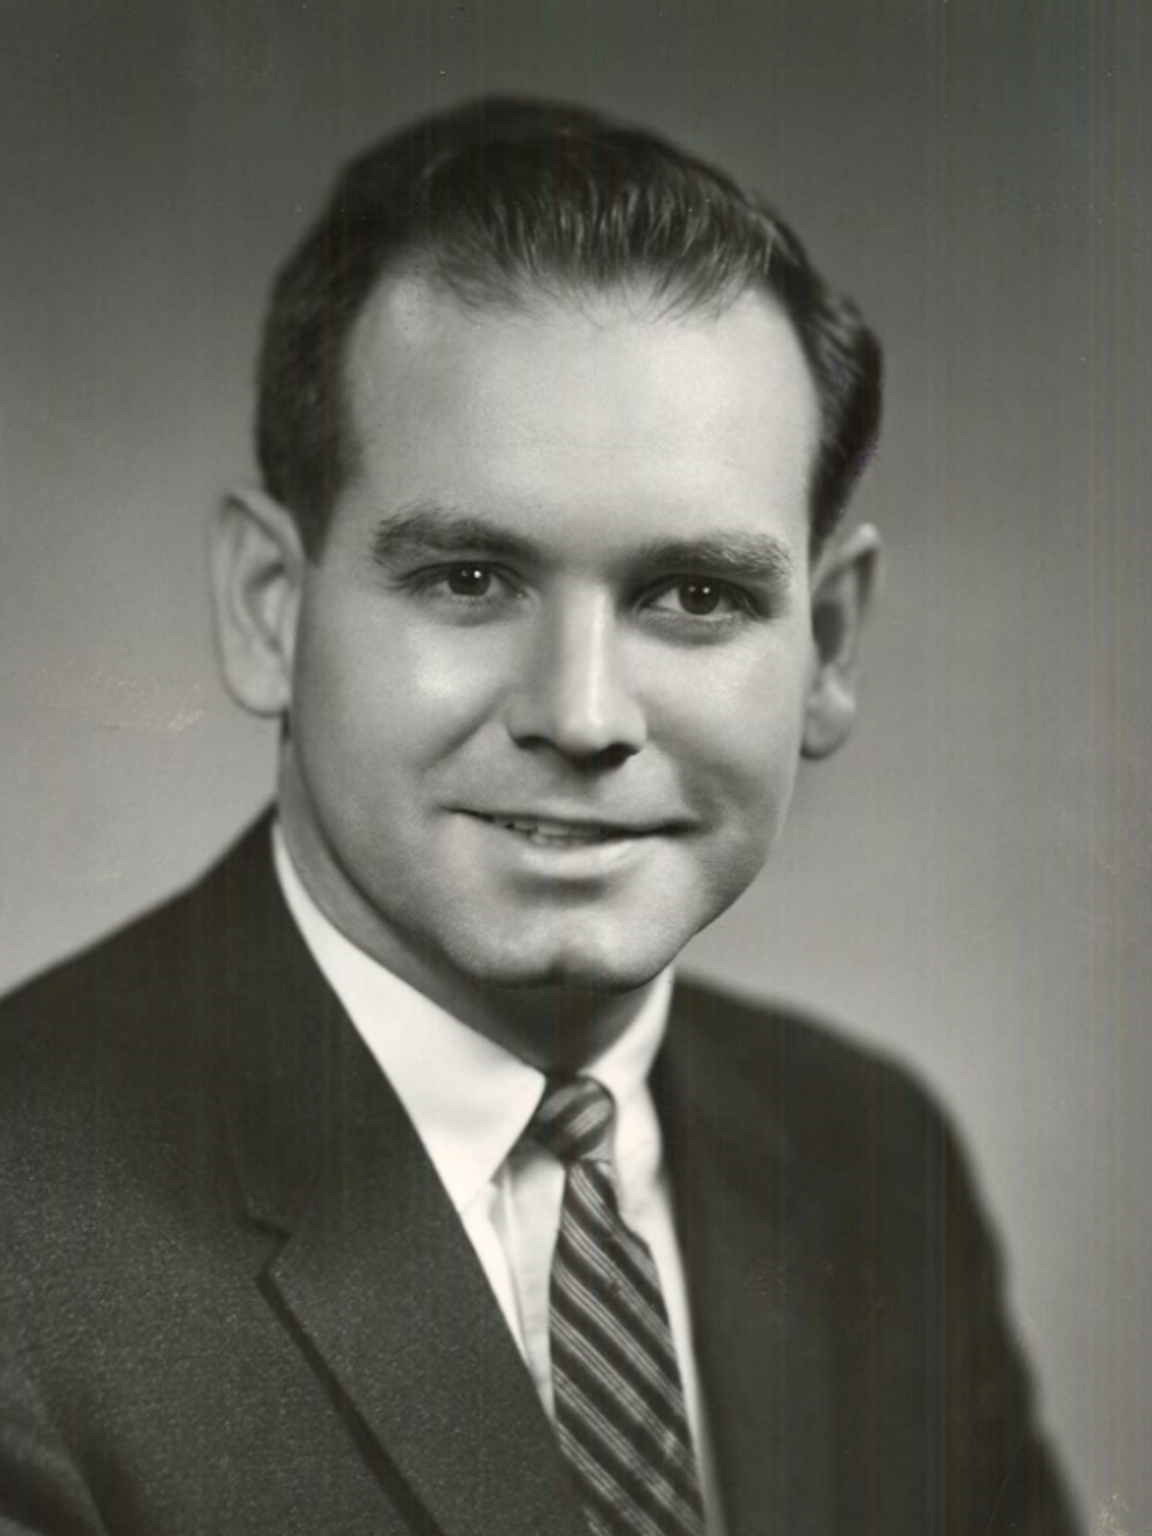 From 1958: Des Moines attorney Robert Ray, who was